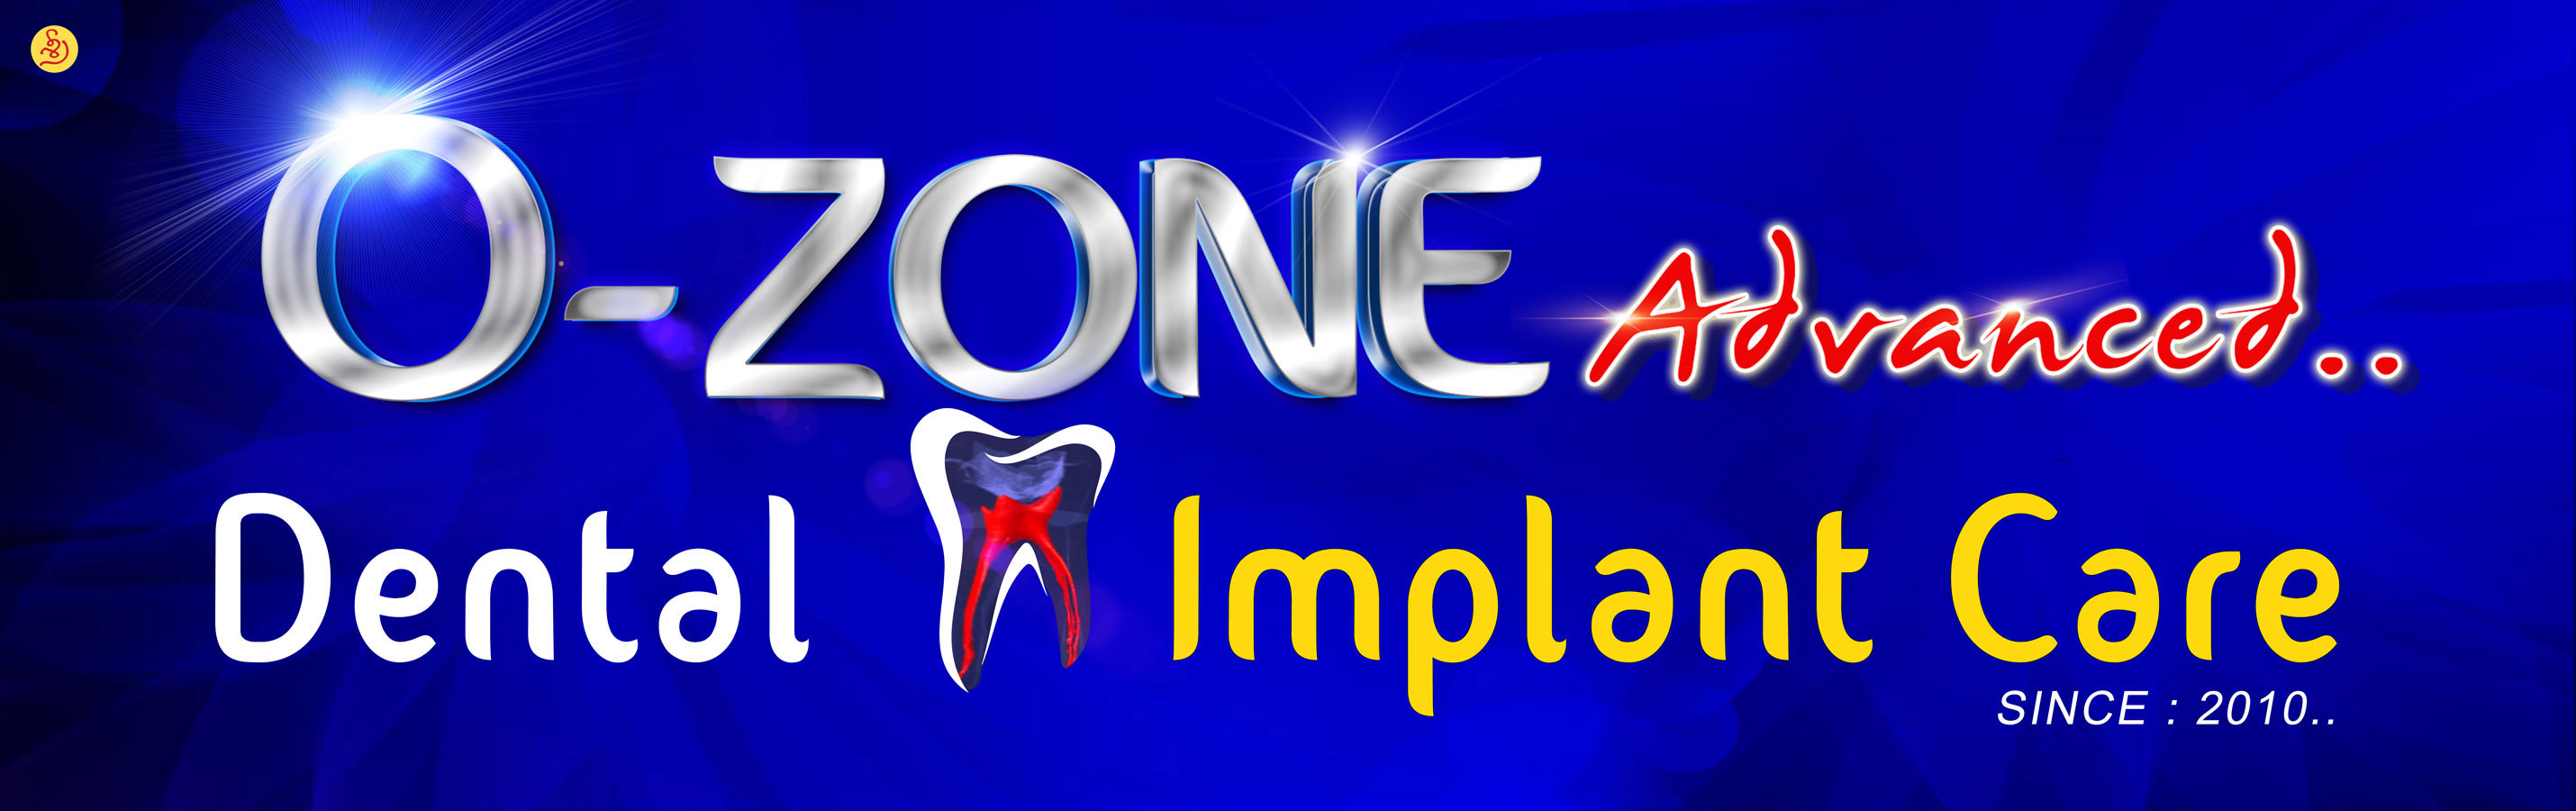 O-Zone Advanced Dental & Implant care